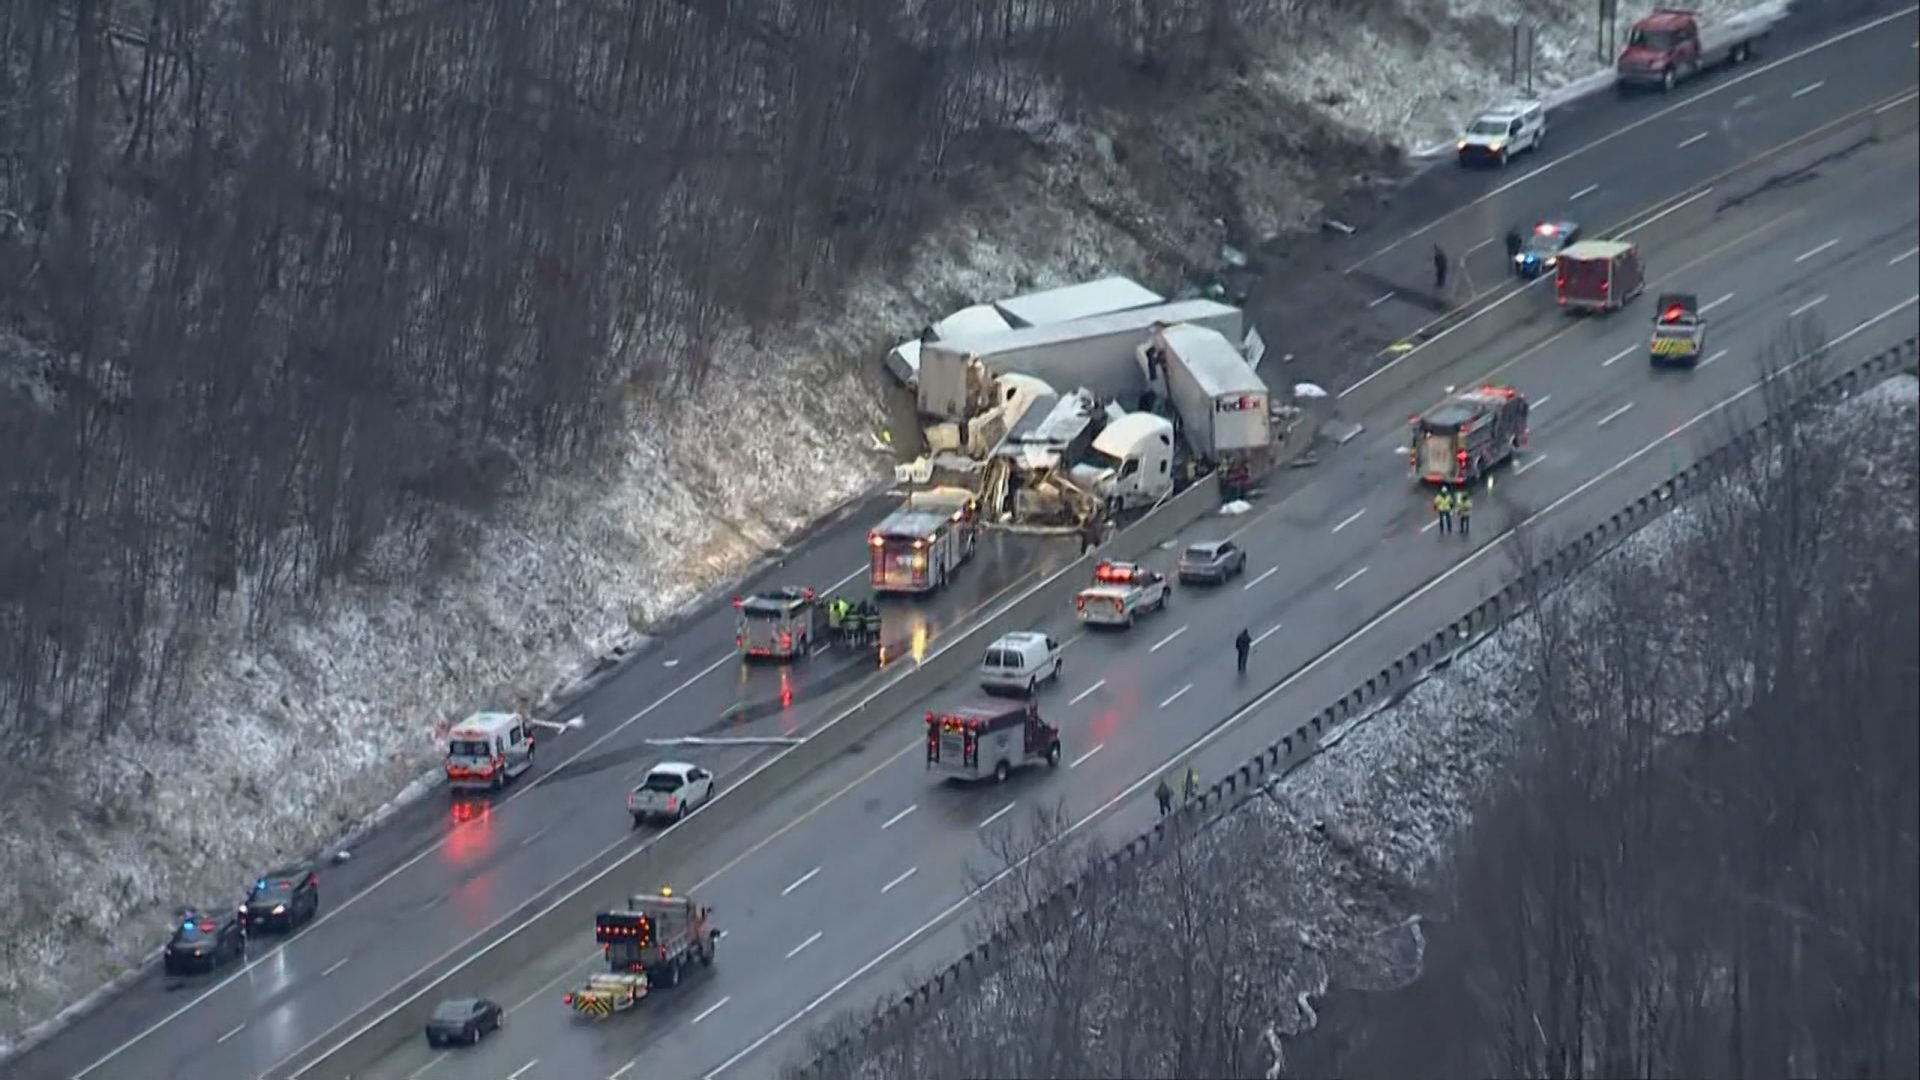 5 dead 60 hospitalized in pennsylvania turnpike crash scaled - Yunnan Sees COVID-19 Spike as Myanmar Slides Toward 'Super-Spreader' State